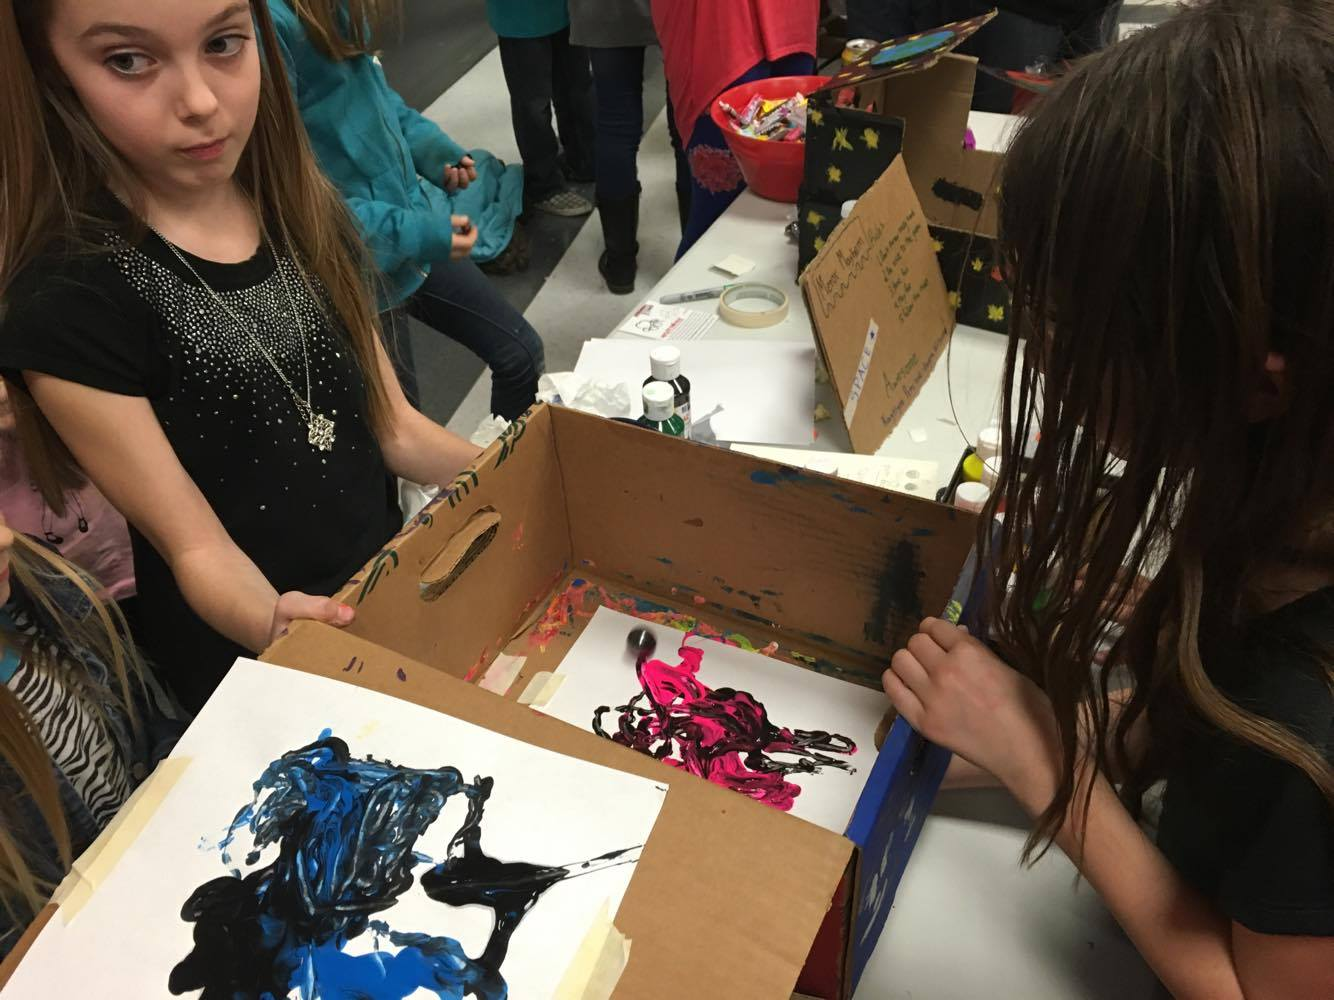 Hurricane Elementary S Cardboard Carnival Shows Stem Education In Action St George News